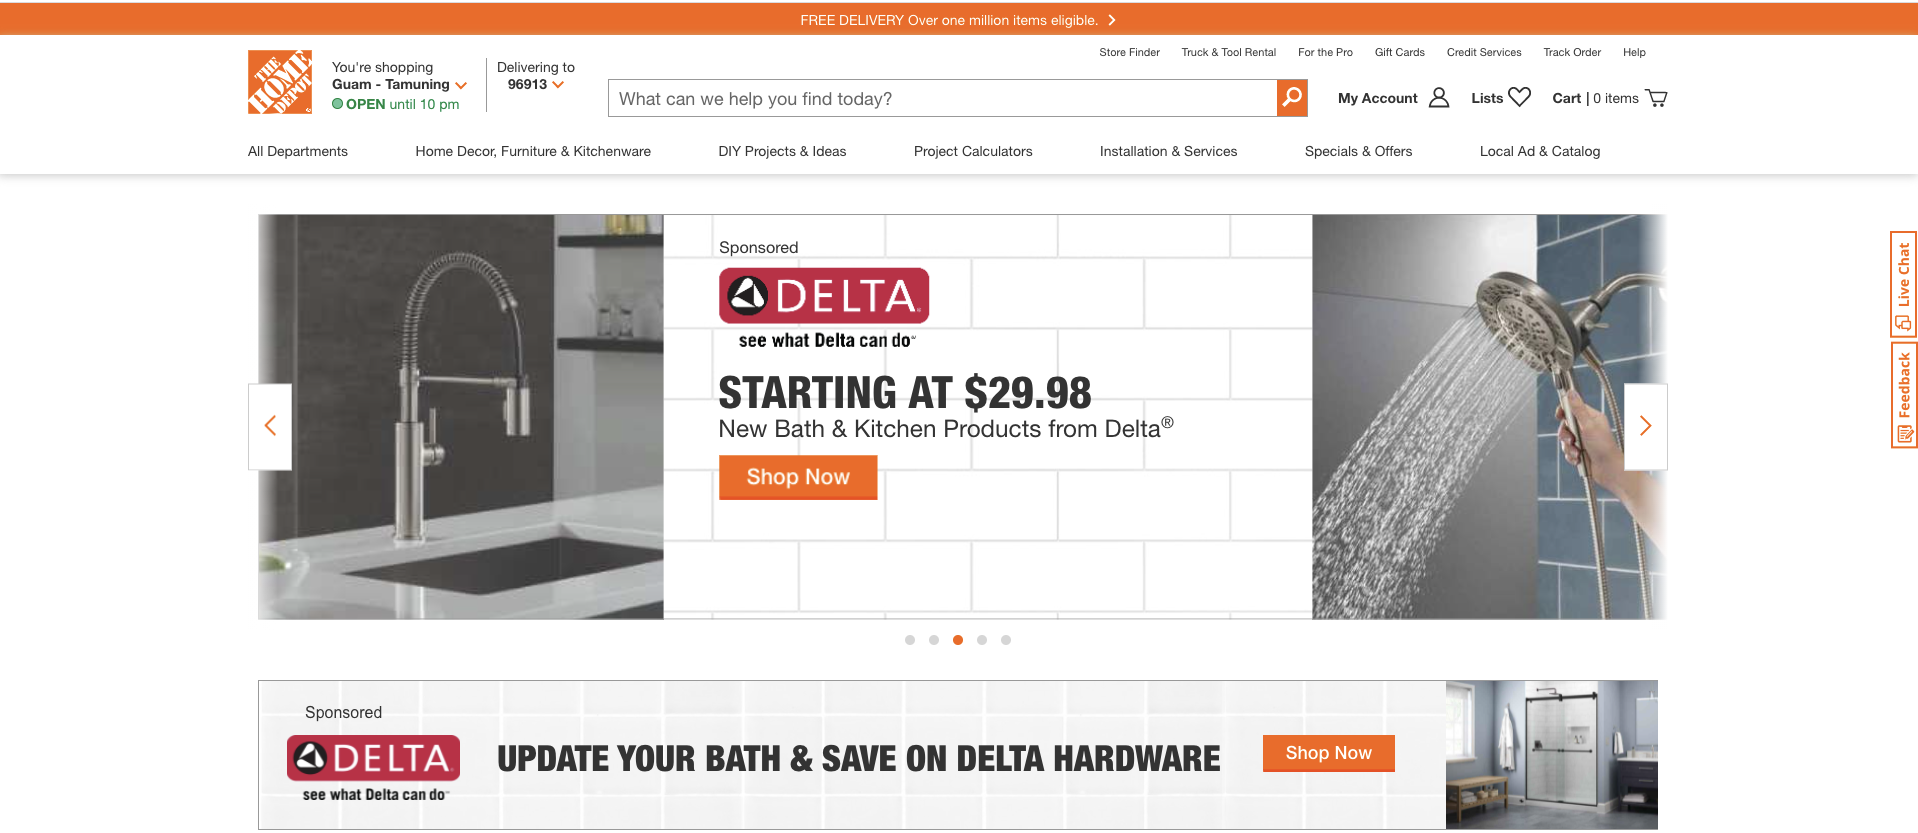 Example of search prompts from Home Depot